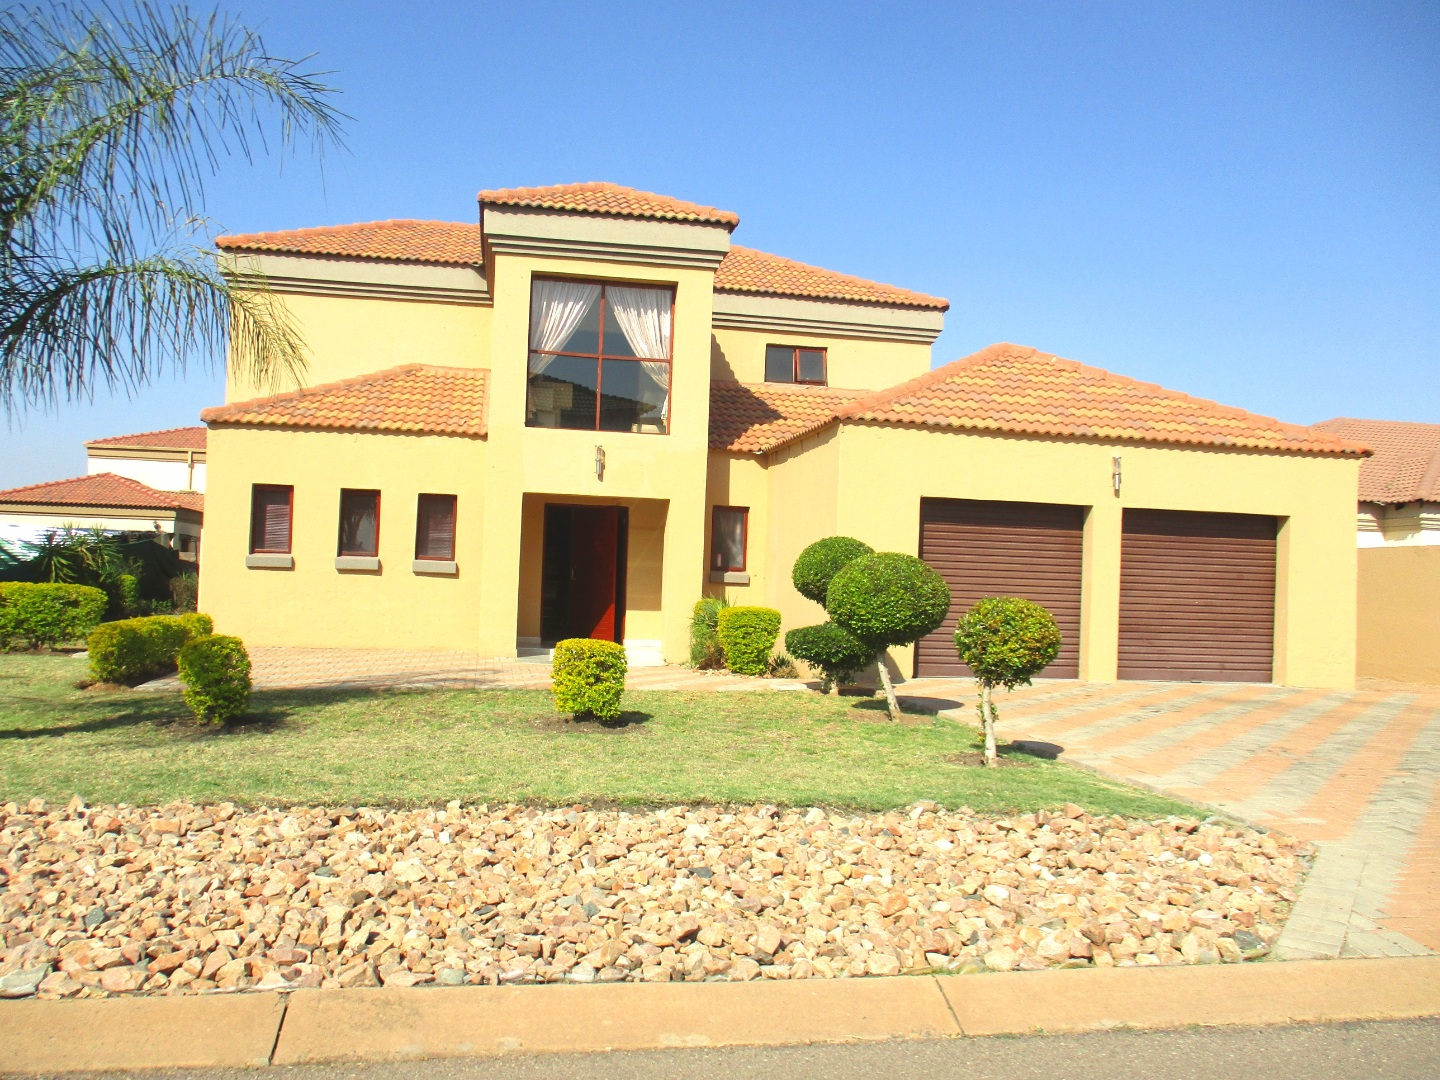 4 Bedroom House For Sale in Theresapark